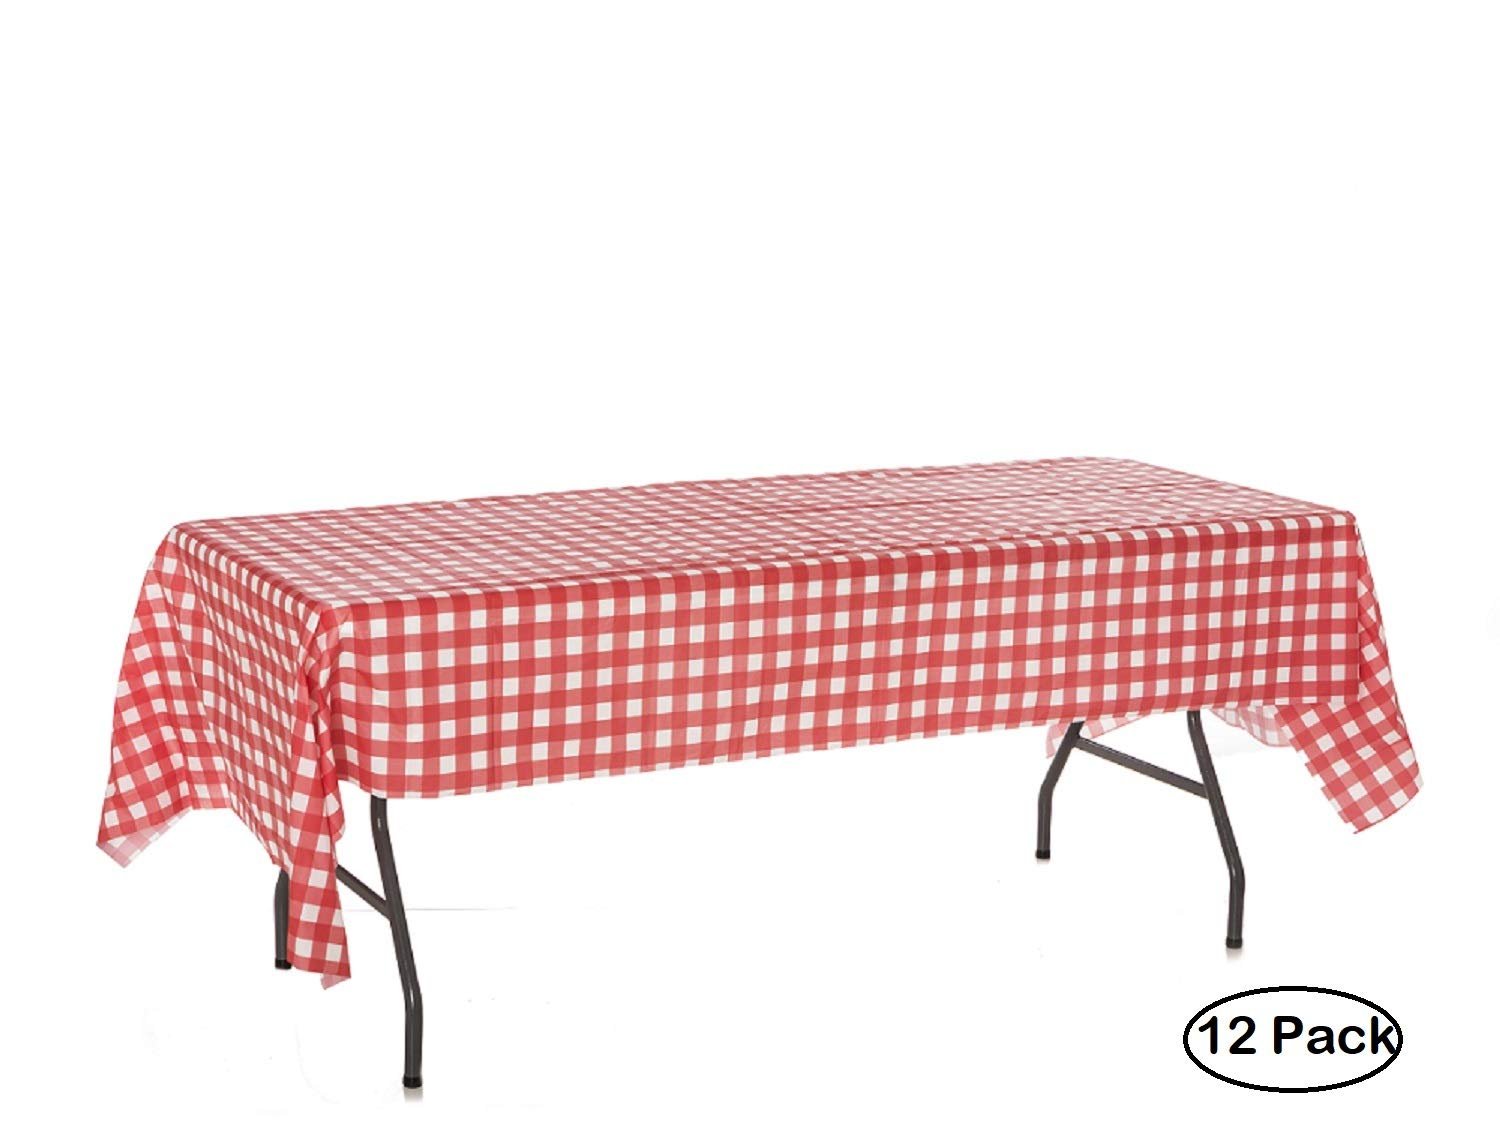 Pack of 12 Plastic Red and White Checkered Tablecloths - 12 Pack - Picnic Table Covers Gingham by Oojami